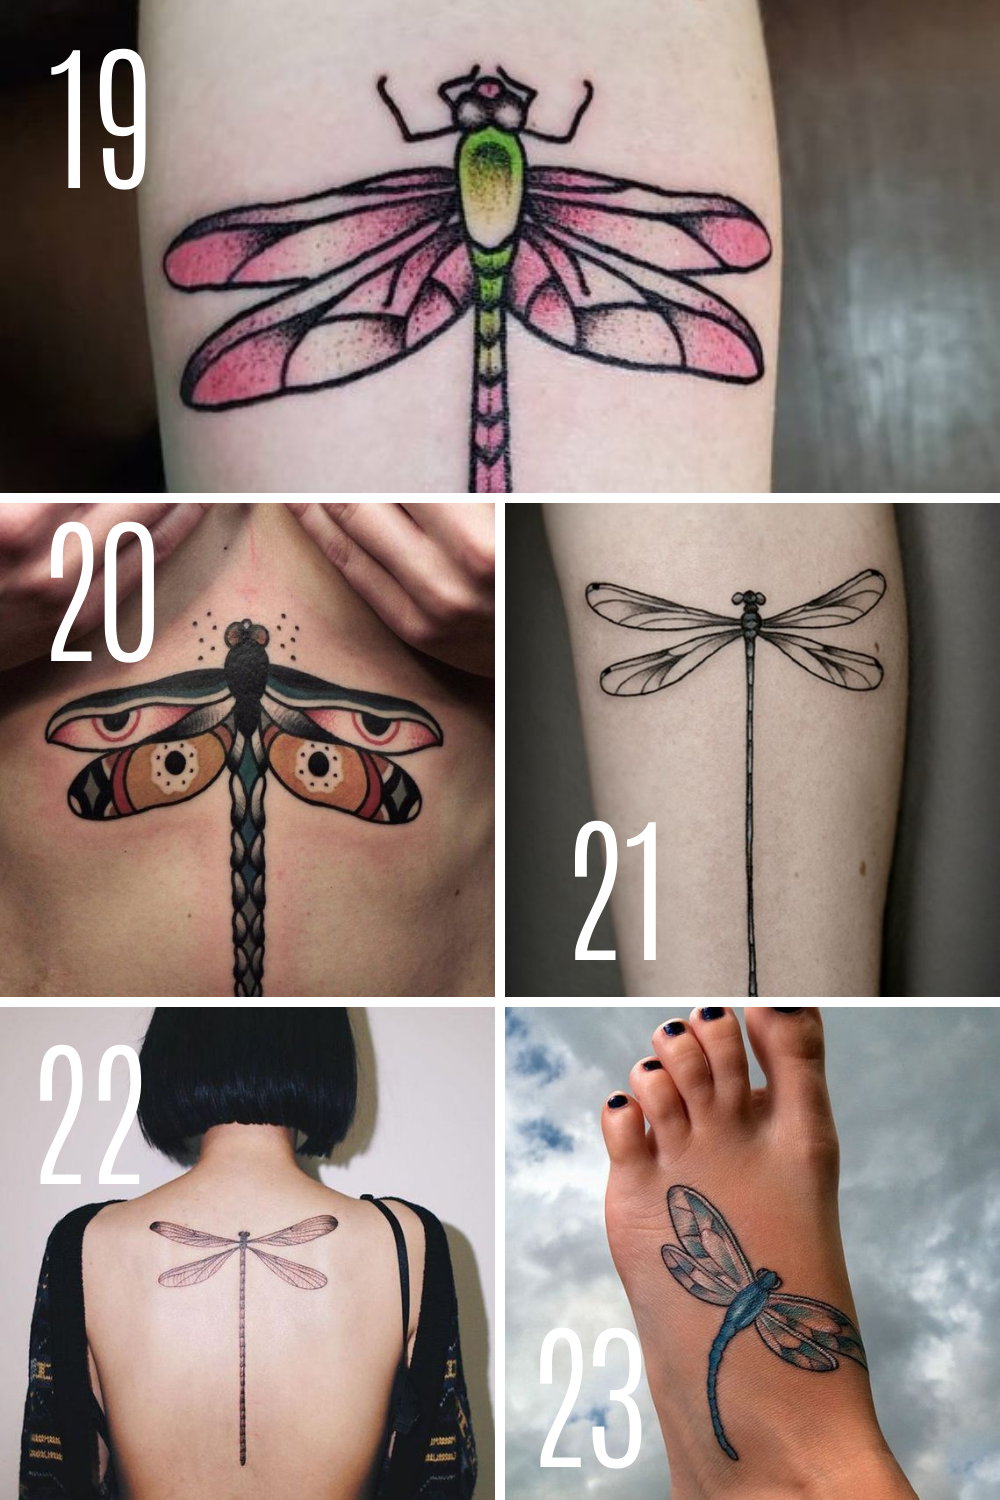 Meaningful tattoo ideas With Dragonflies